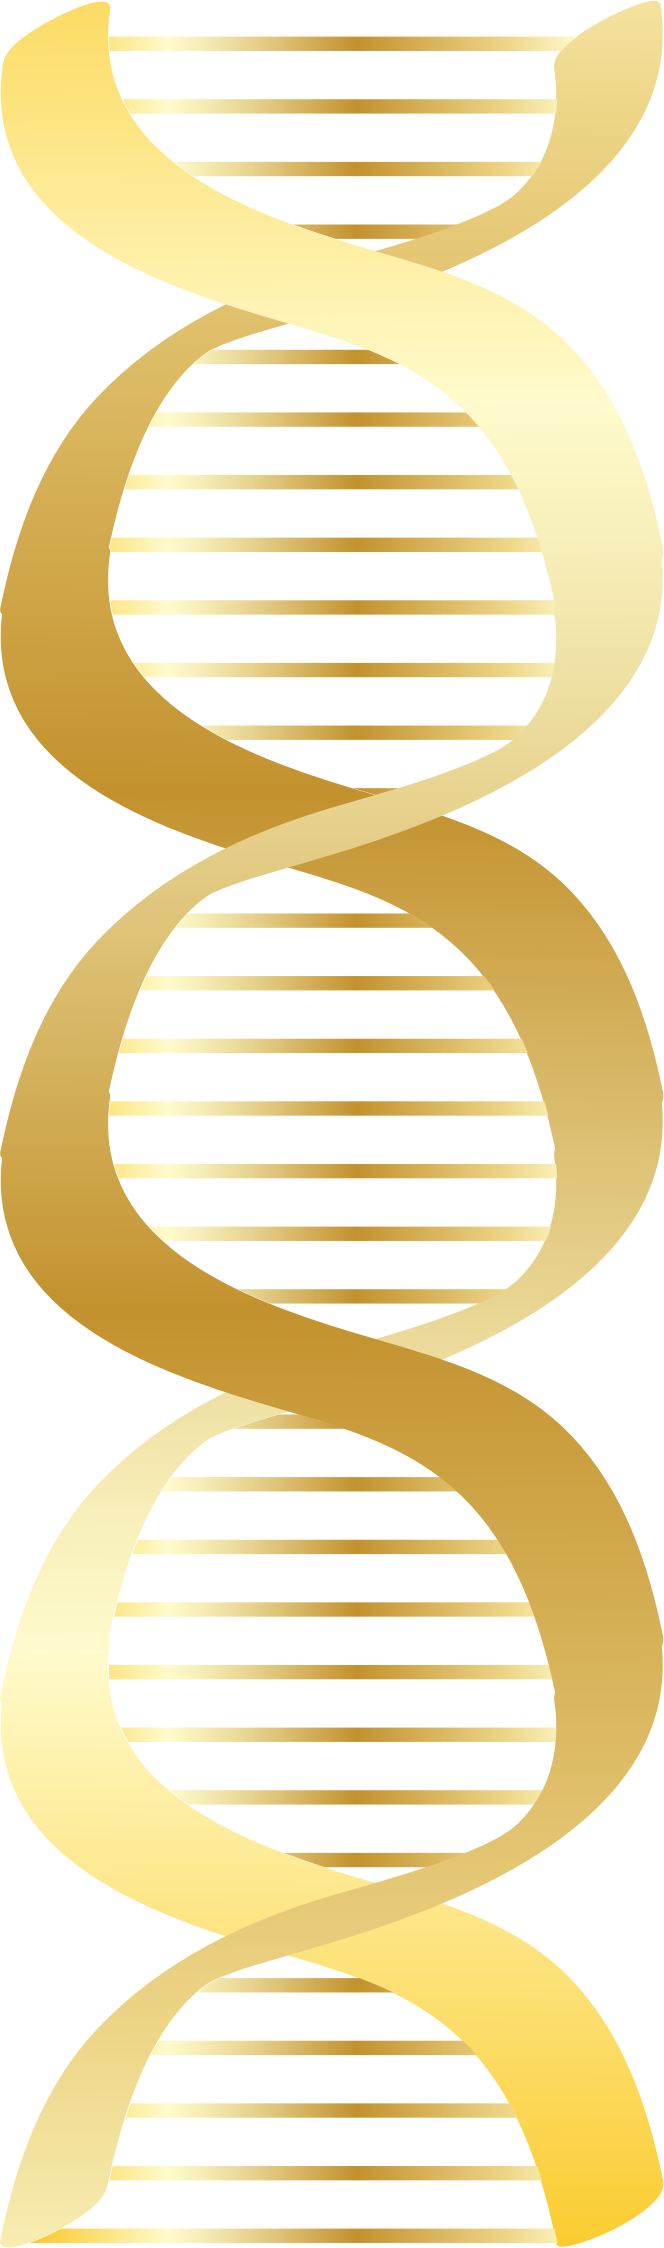 Gold DNA icon by jhnri4